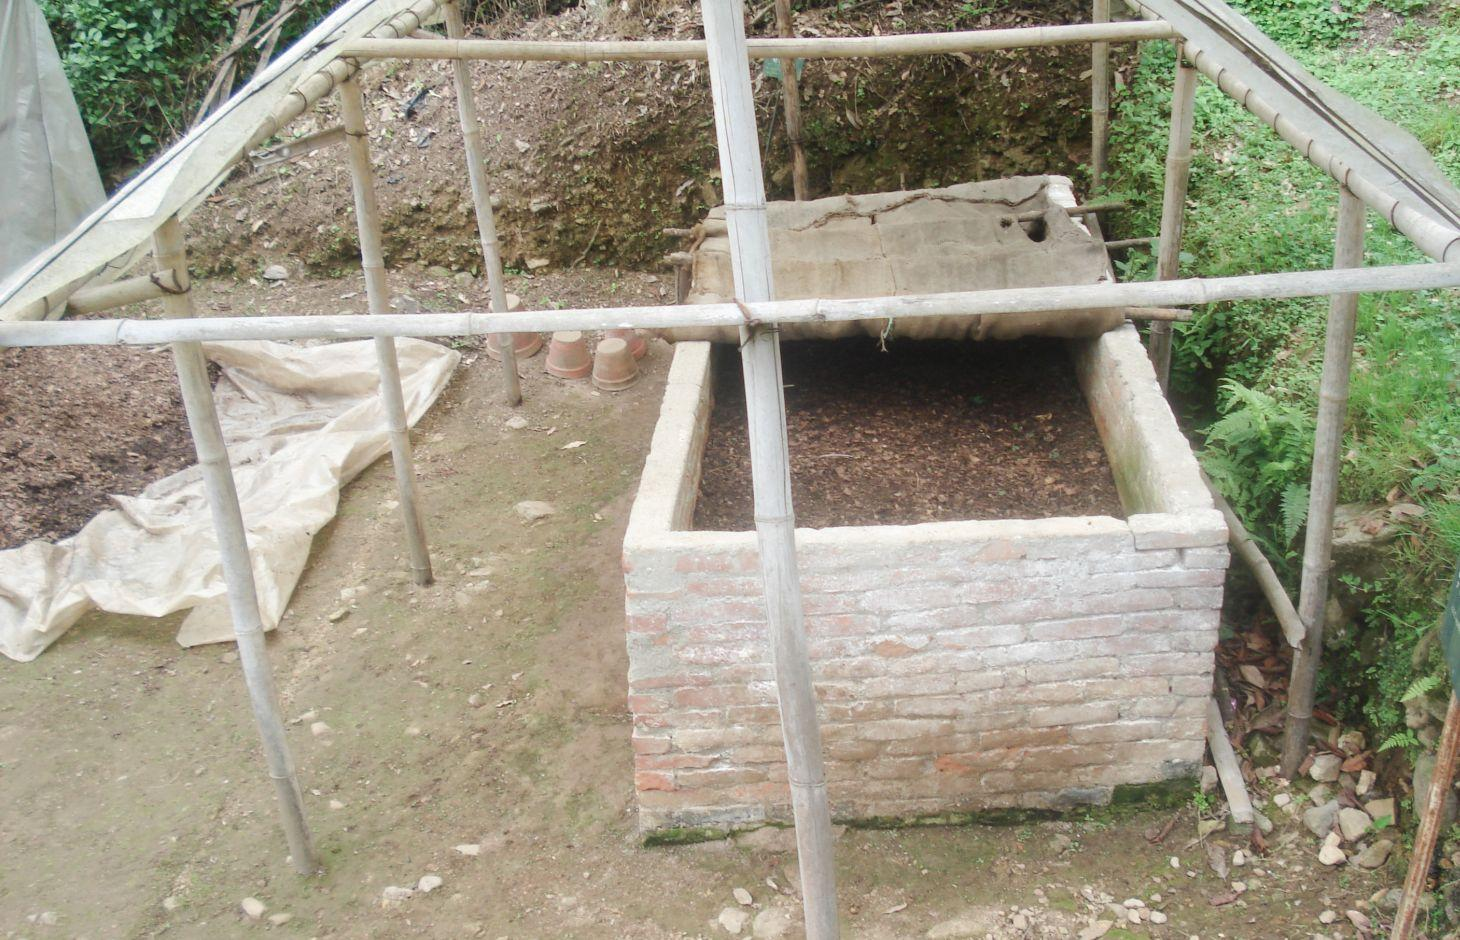 Structure used for vermicomposting showing above ground bin, cover, and shed